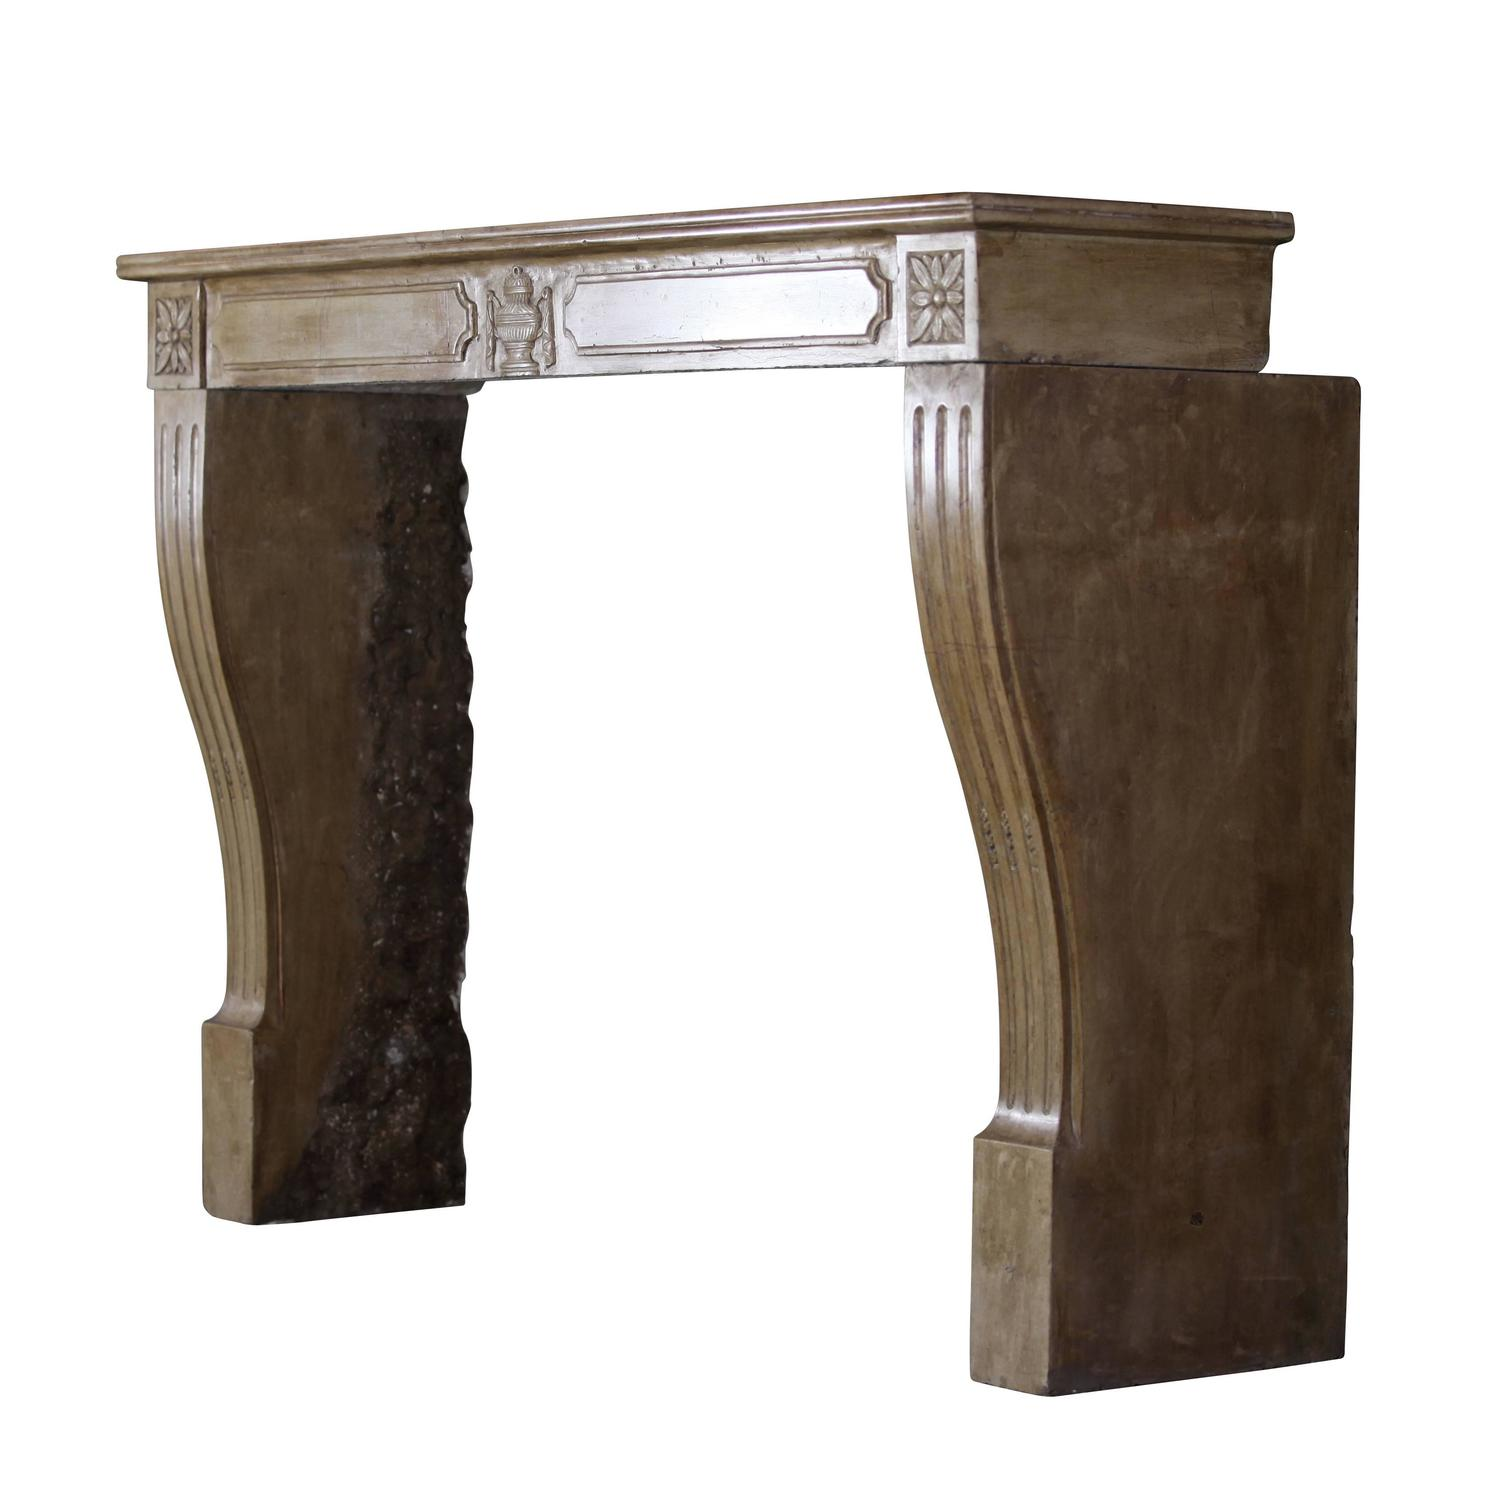 19th century directoire hard stone antique fireplace mantel at 1stdibs